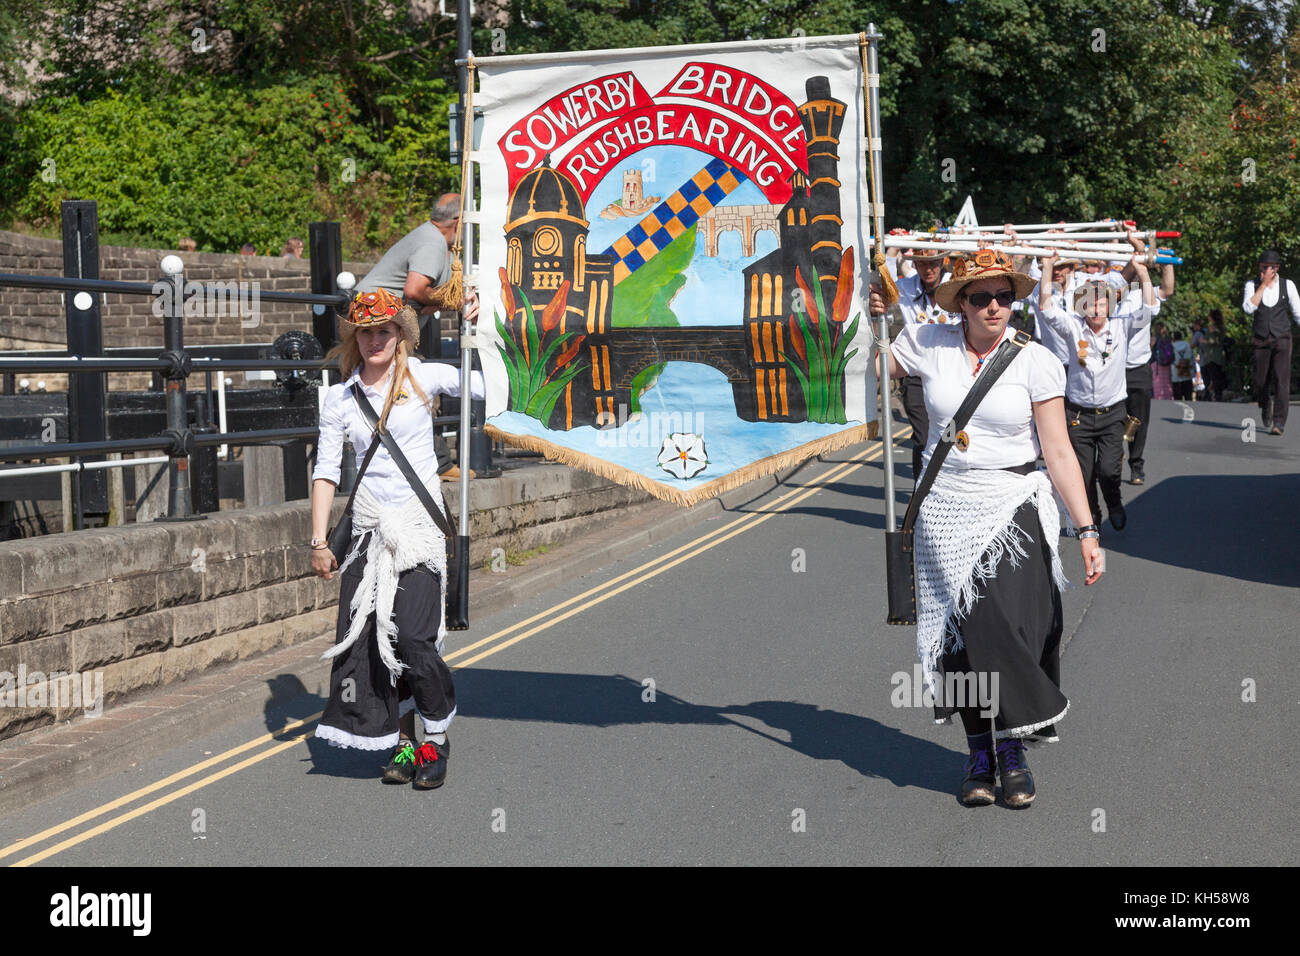 2017 Sowerby Bridge Rushbearing Festival procession with women carrying banner, West Yorkshire - Stock Image